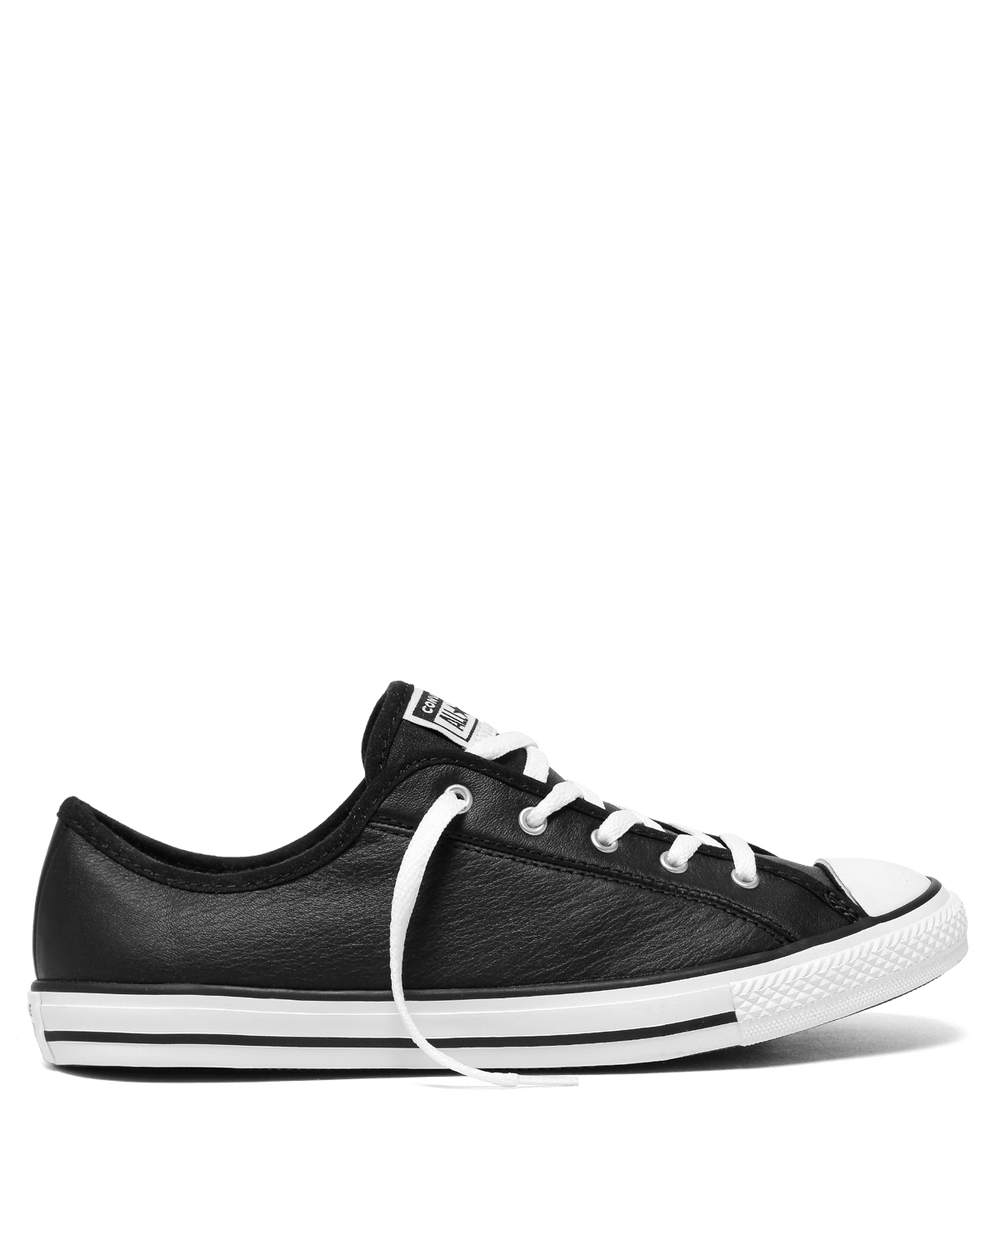 Converse Chuck Taylor Dainty Leather Low Top 2.0 - Black